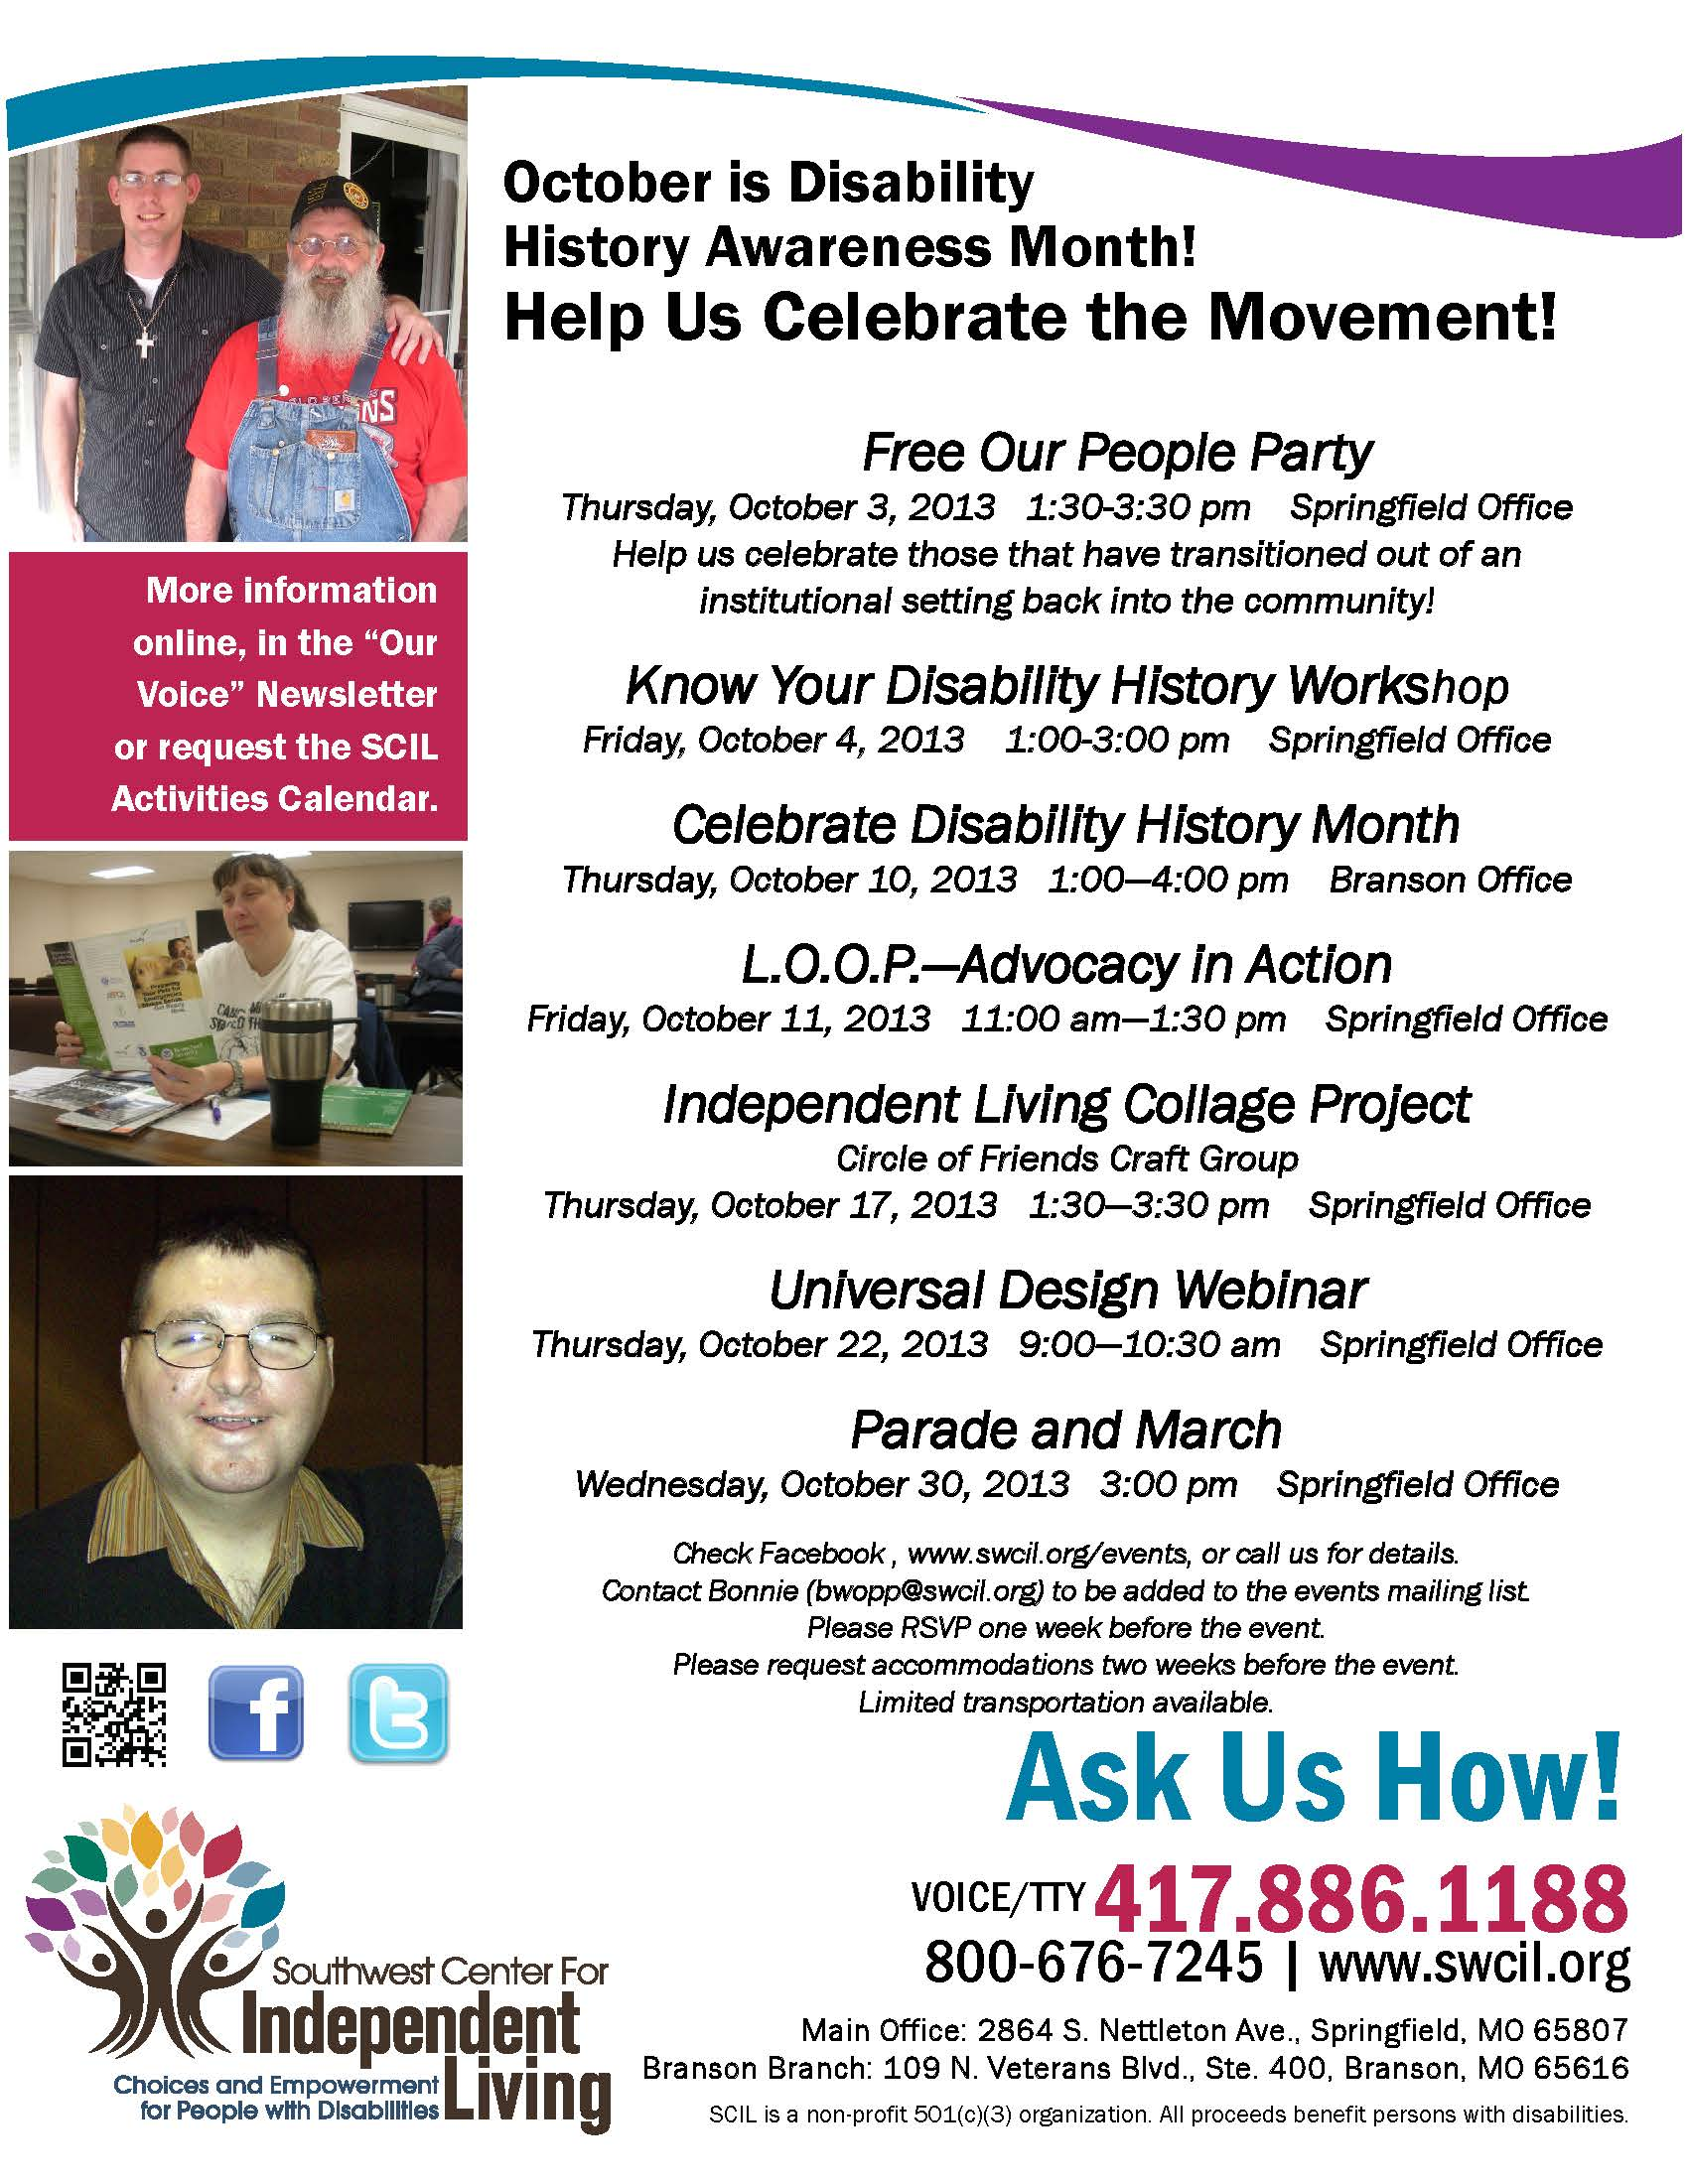 SWCIL Disability History Awareness Month Celebrations